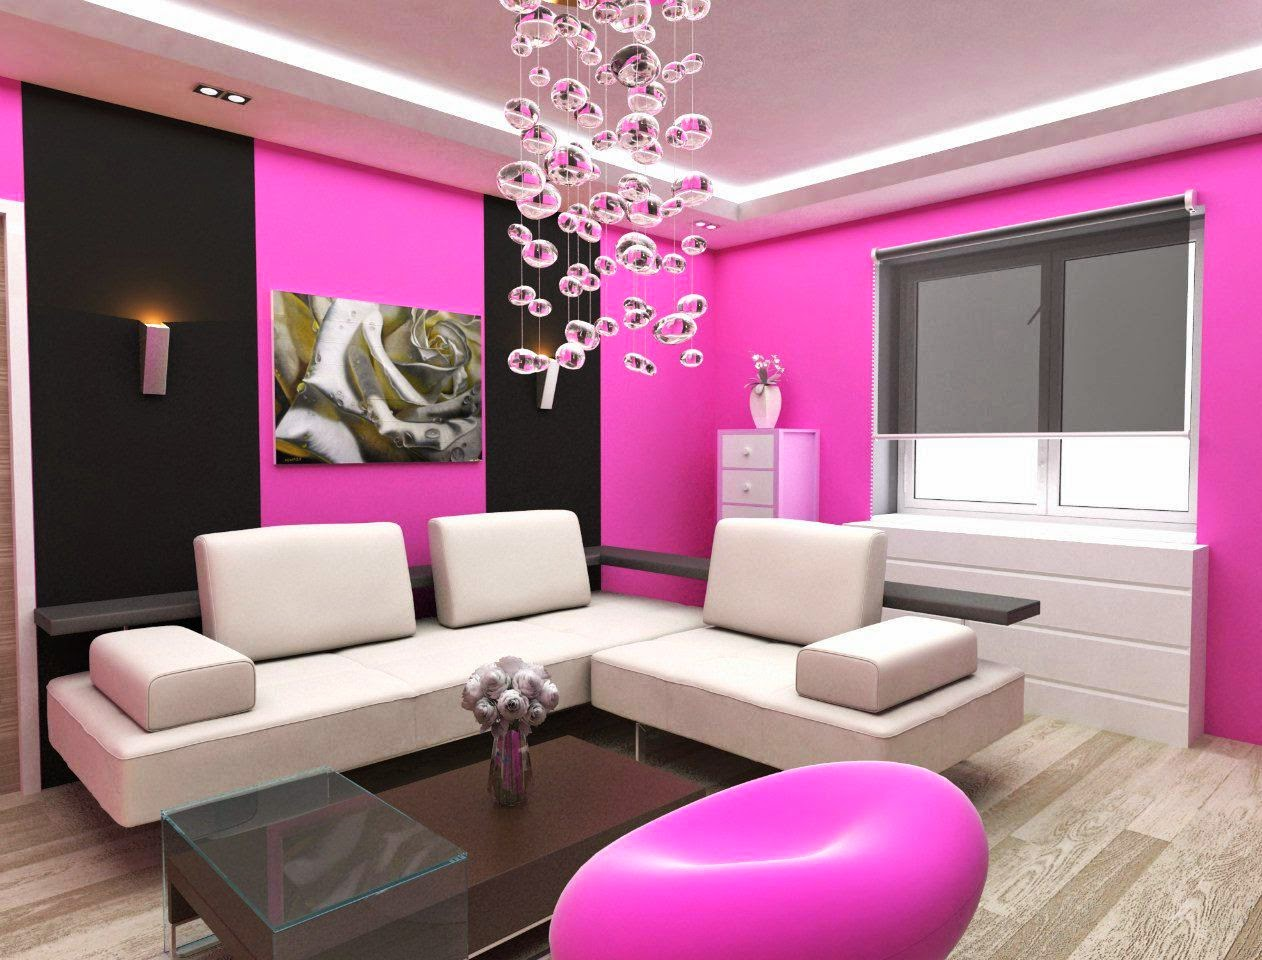 Living Room How To Design Room how to design a pink living room ideas for home decor